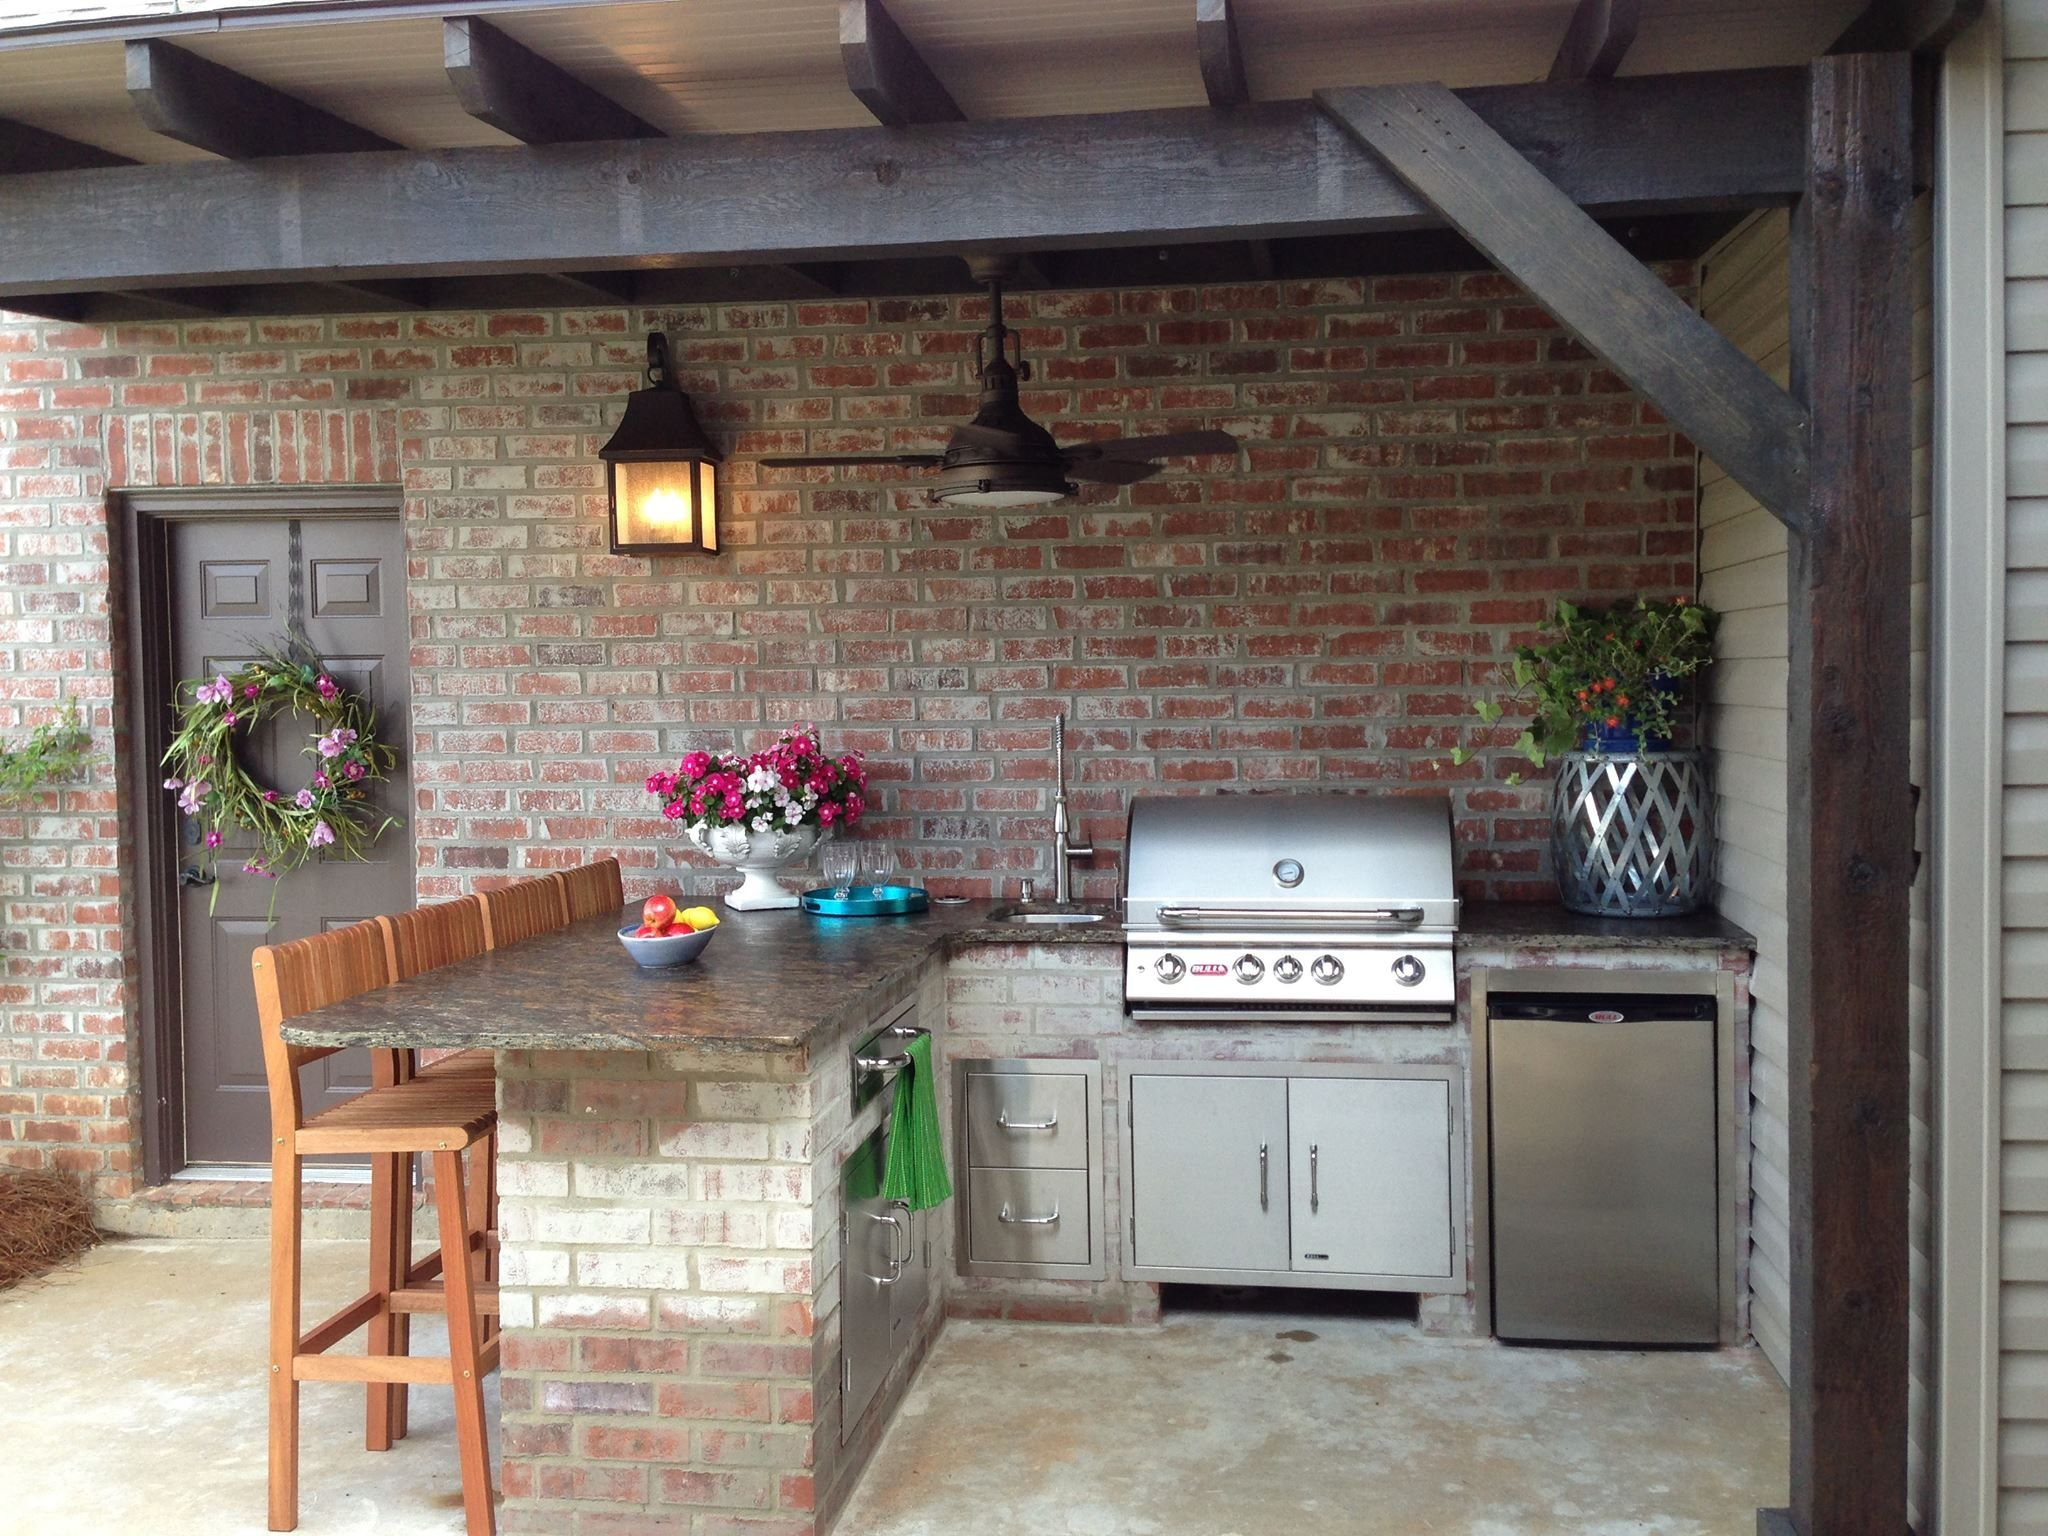 backyard renovations that increase home value heritage house